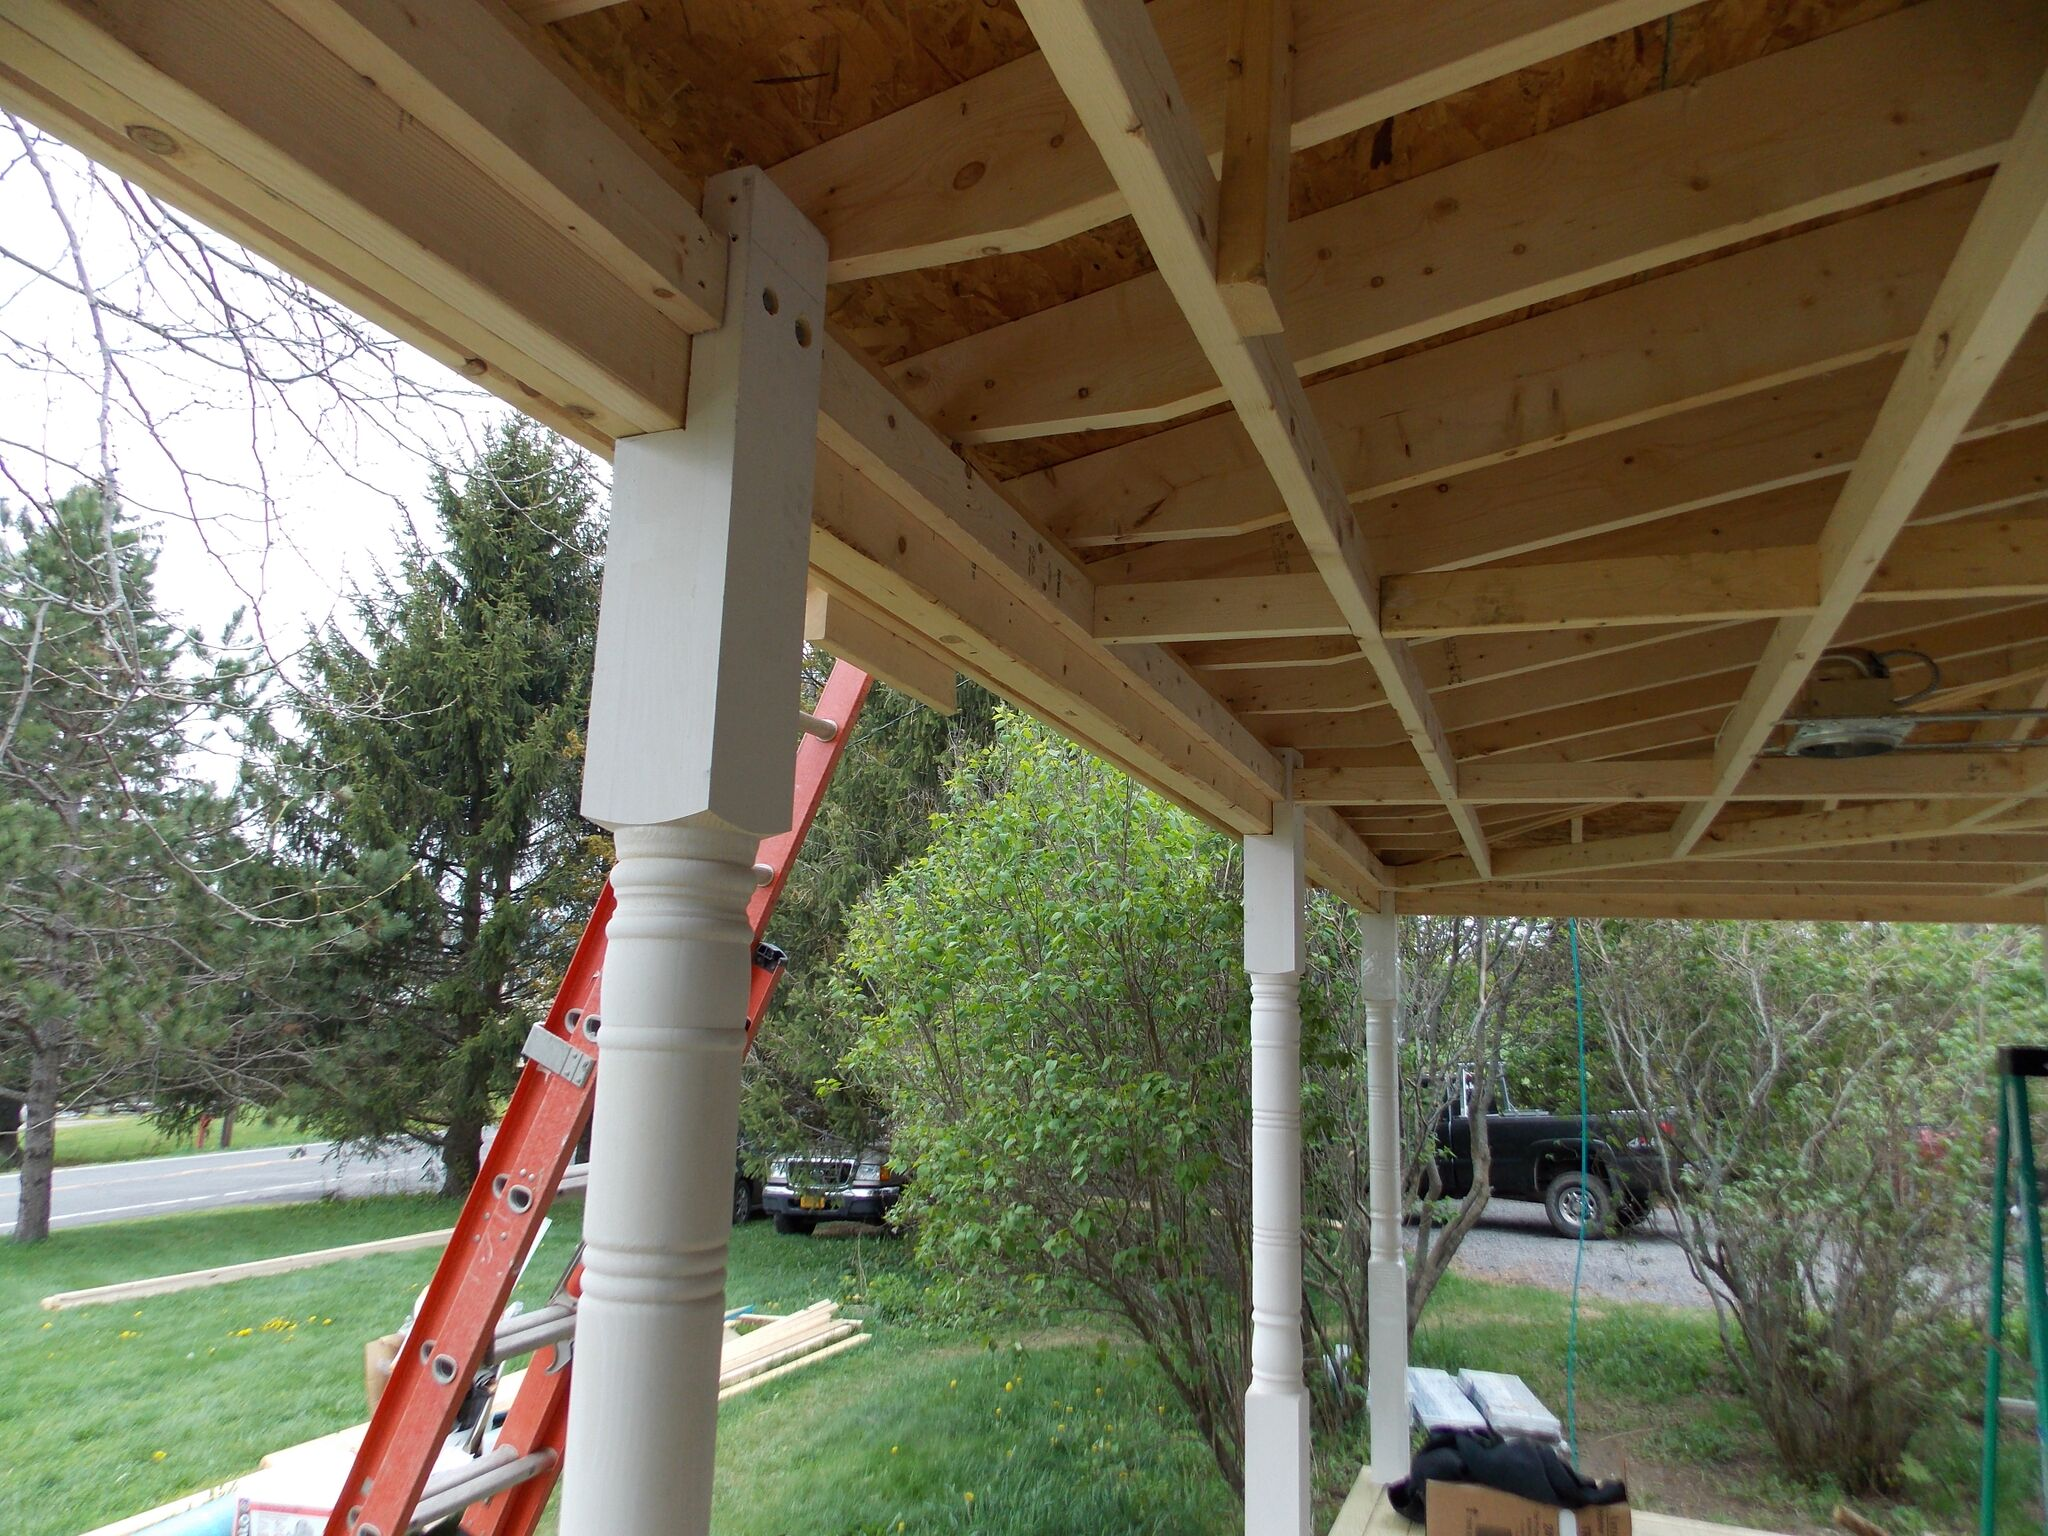 loucks new porch8.jpg